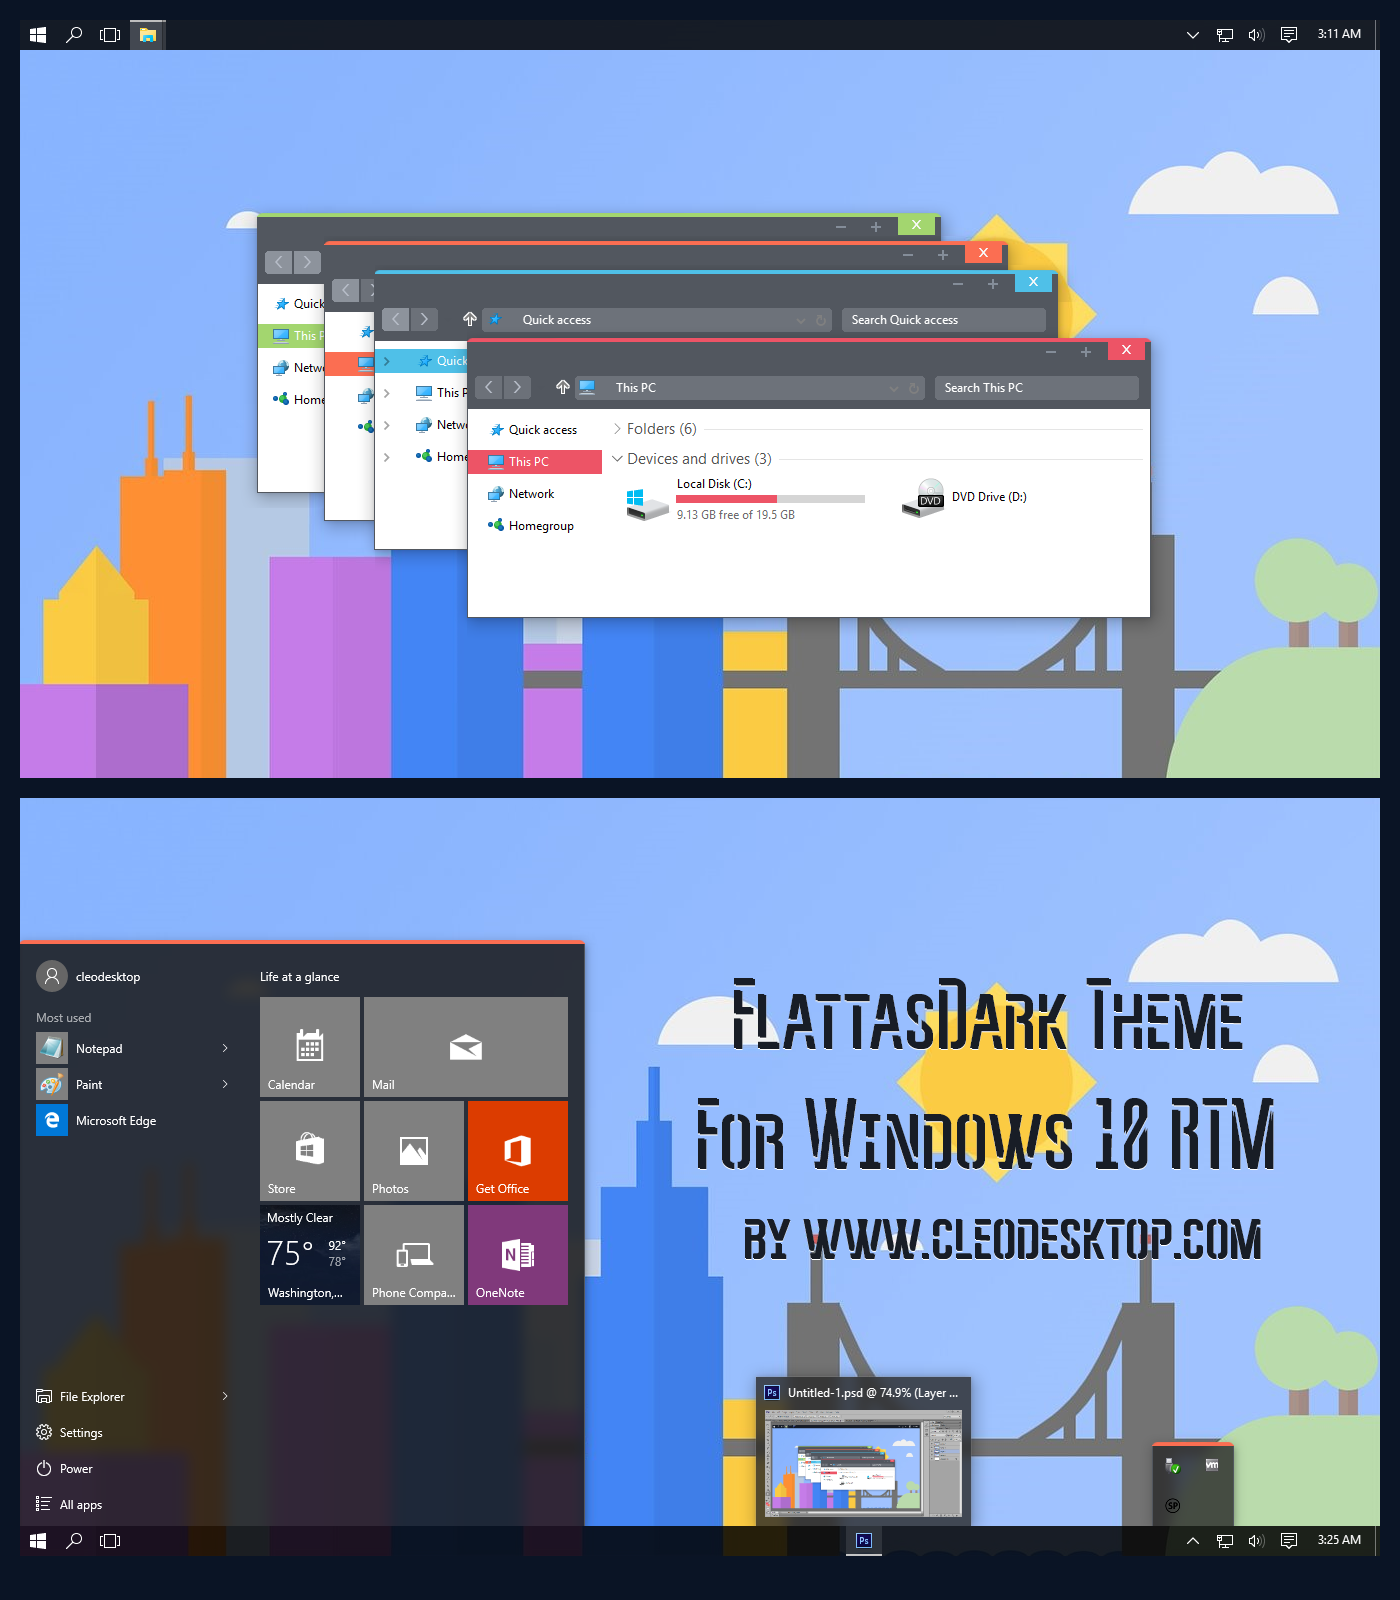 Cleodesktop Flattasdark Theme For Windows 10 Rtm Windows 10 Windows Theme